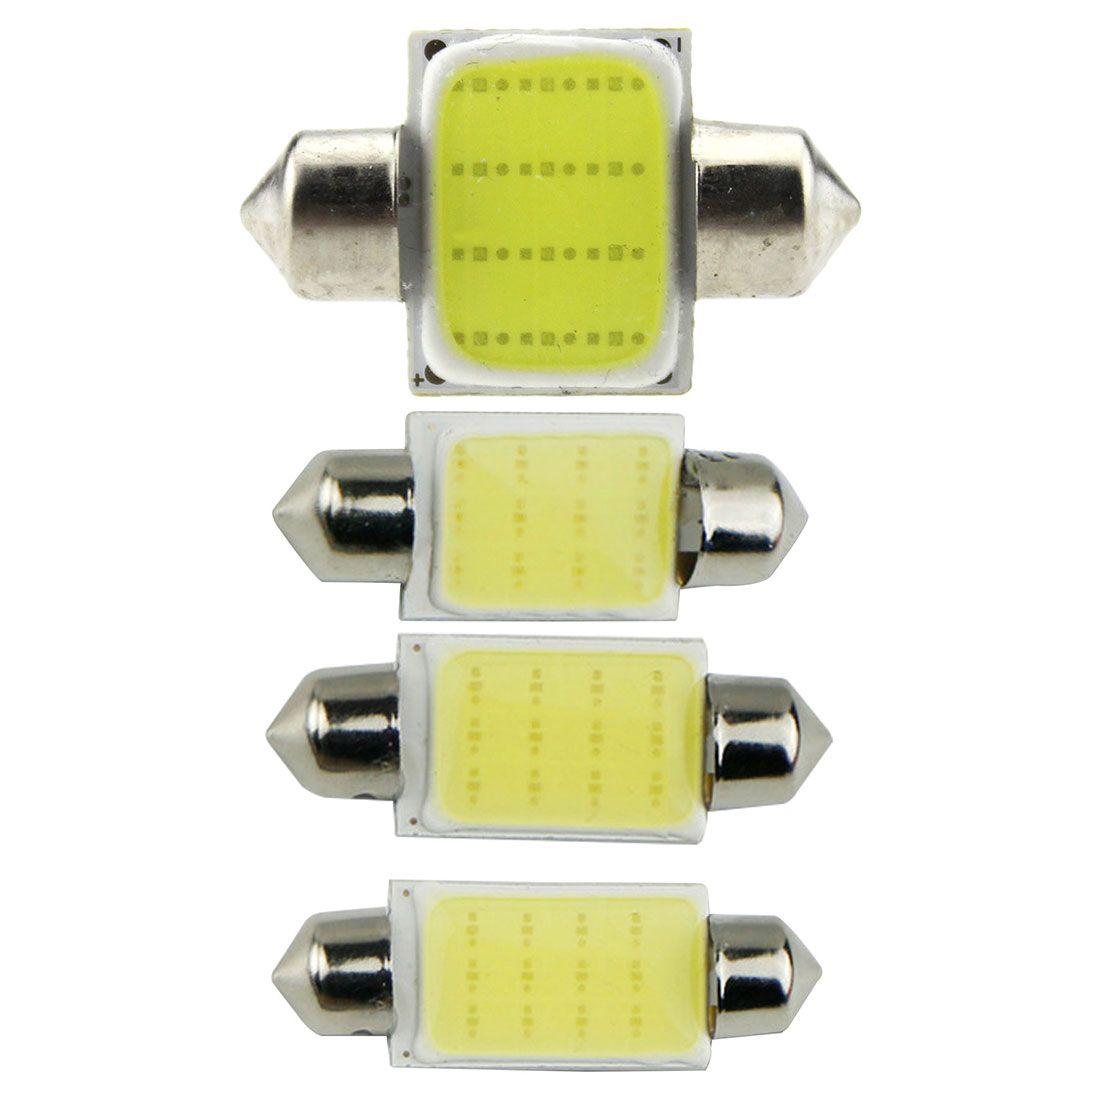 10pcs/lot 31mm 36mm 39mm 41mm Car COB 1.5W DC12V Interior Car LED Bulbs Lamp Interior Dome Lights